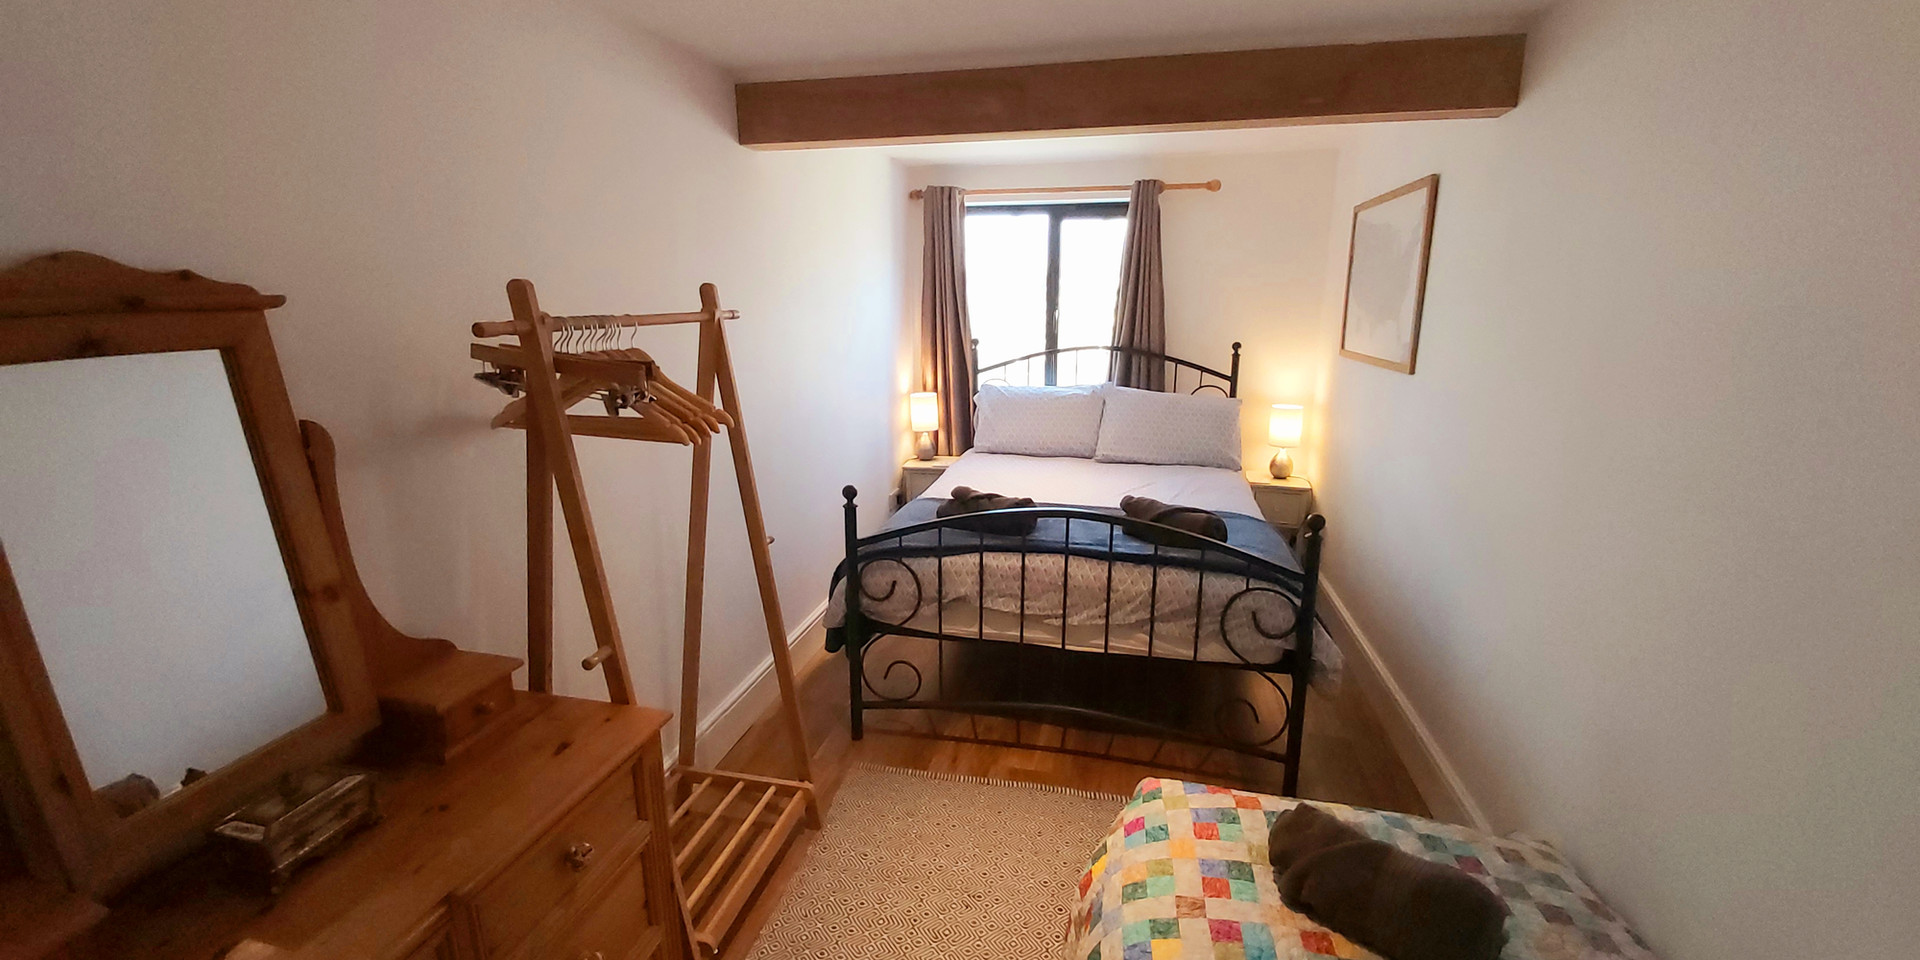 Bedroom 5, sleeps 3 (ground floor)